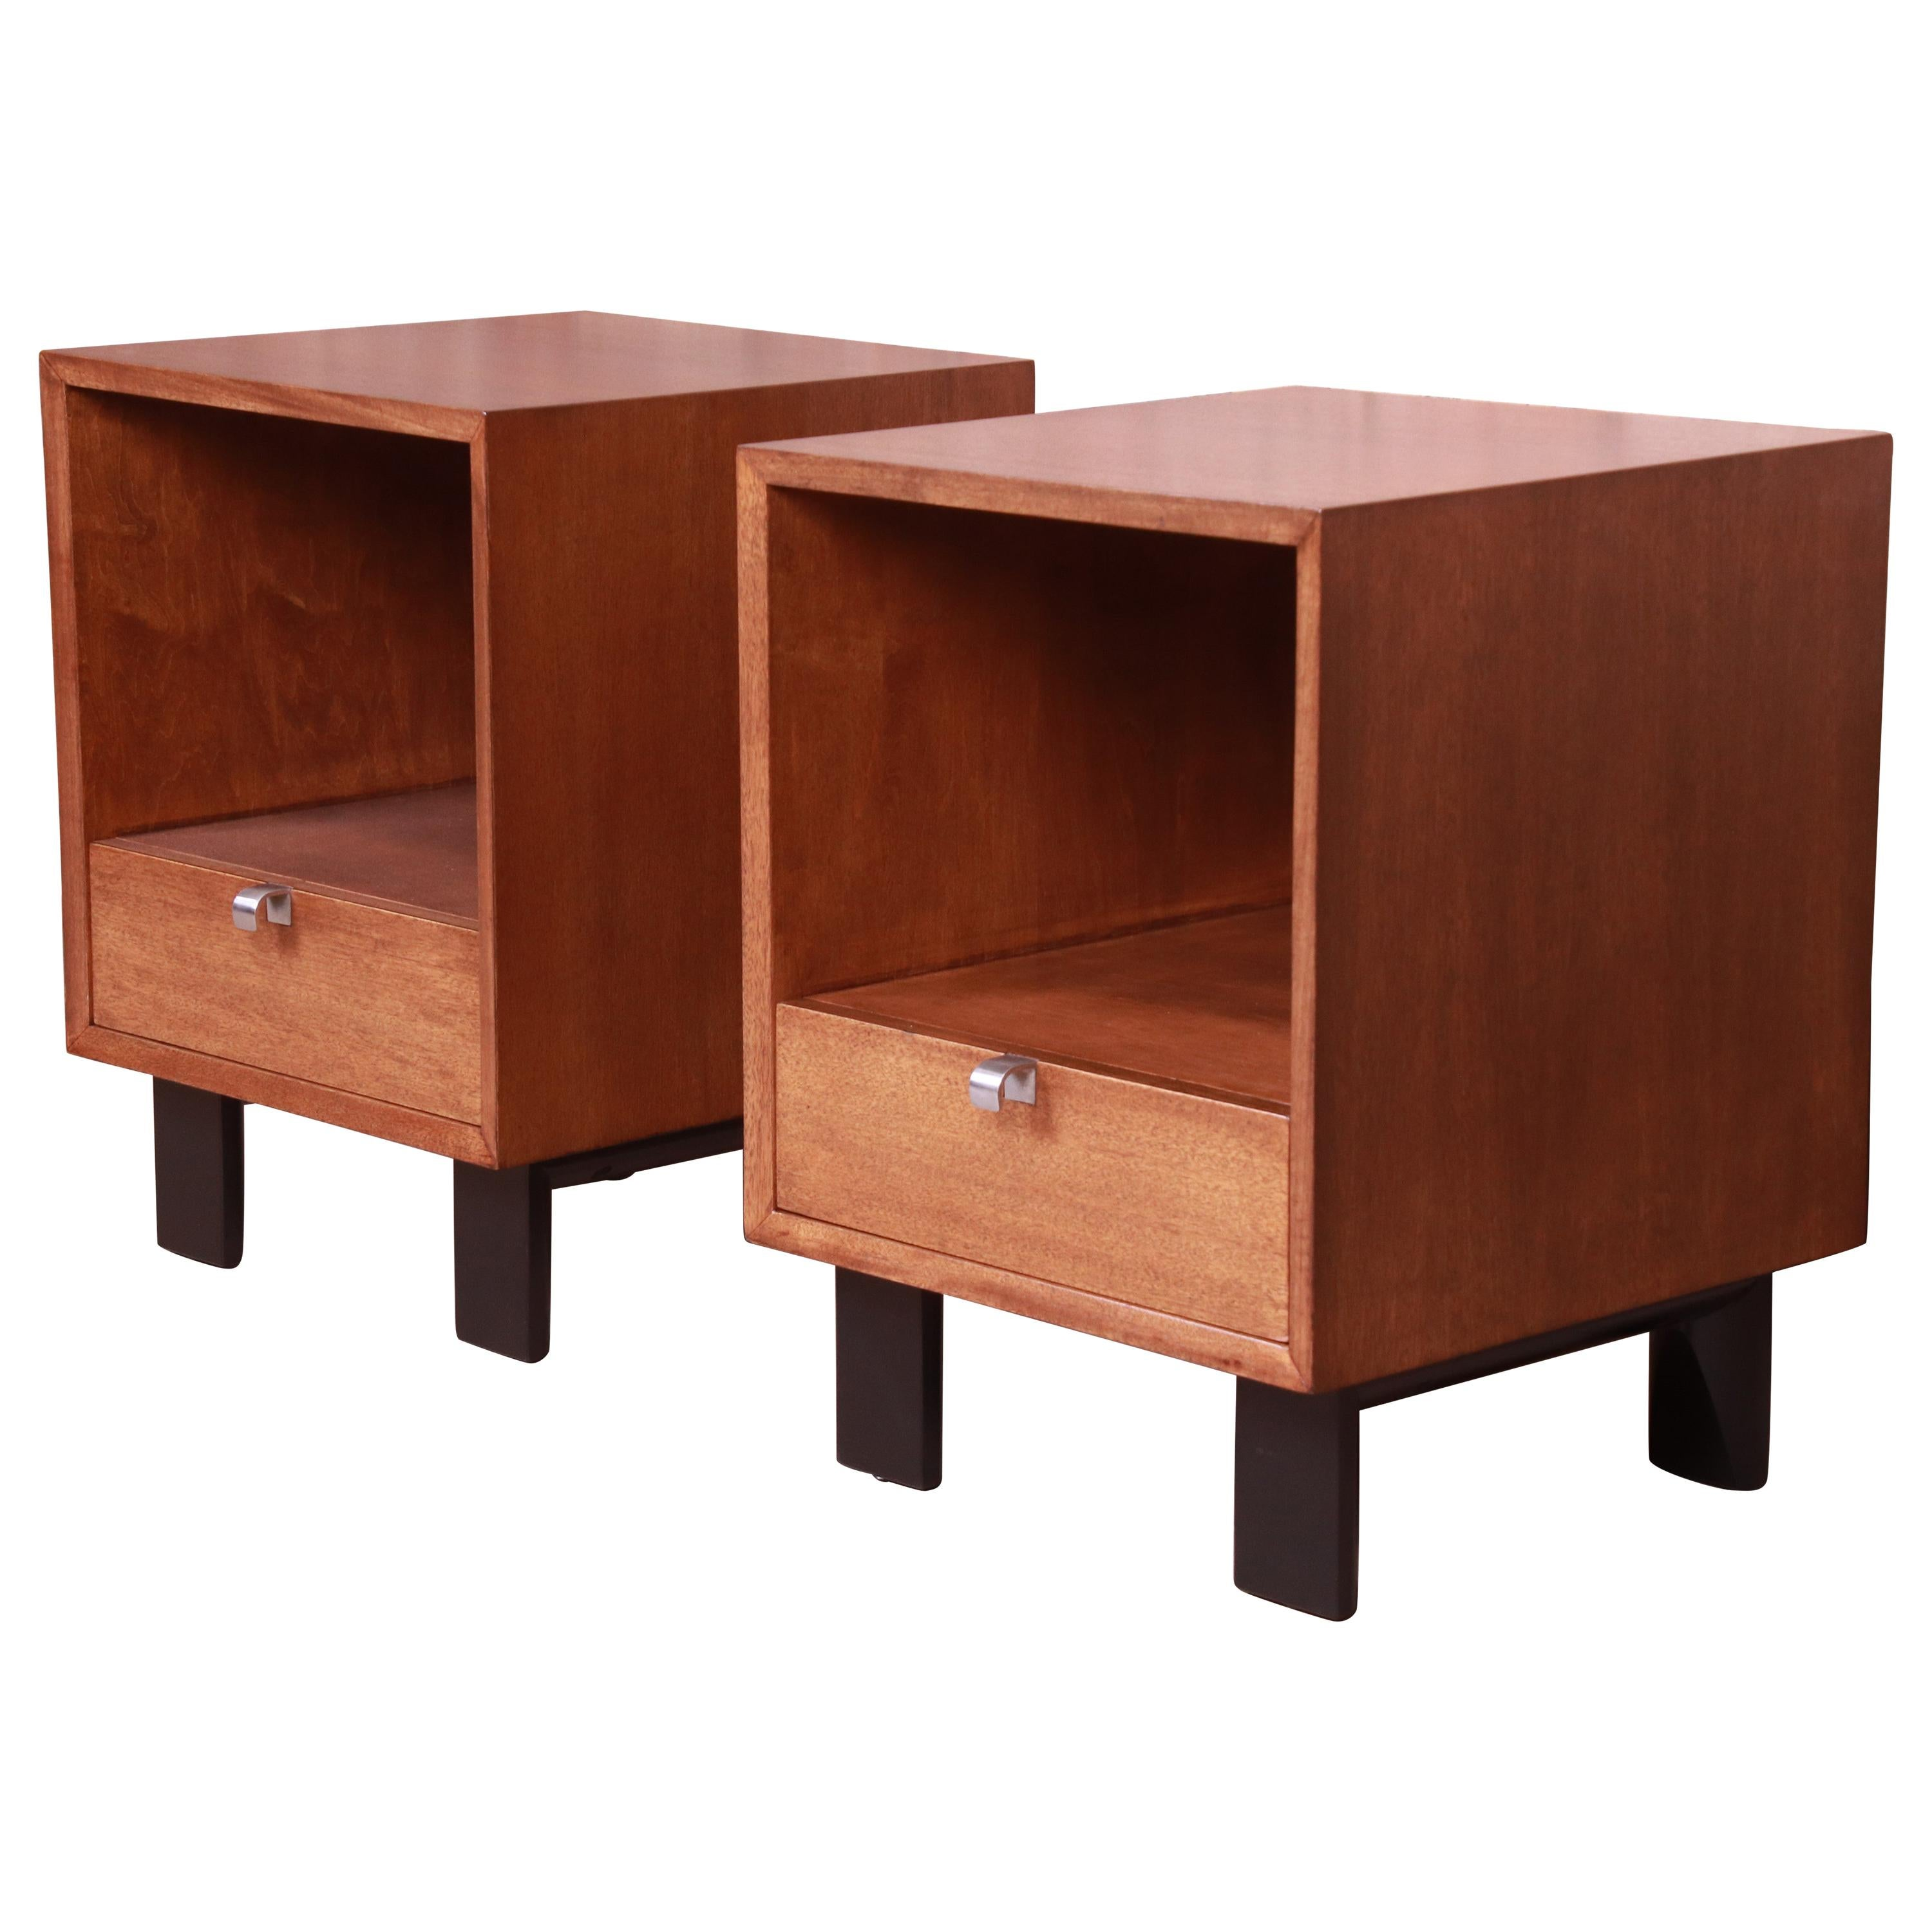 George Nelson for Herman Miller Walnut Nightstands, Newly Refinished